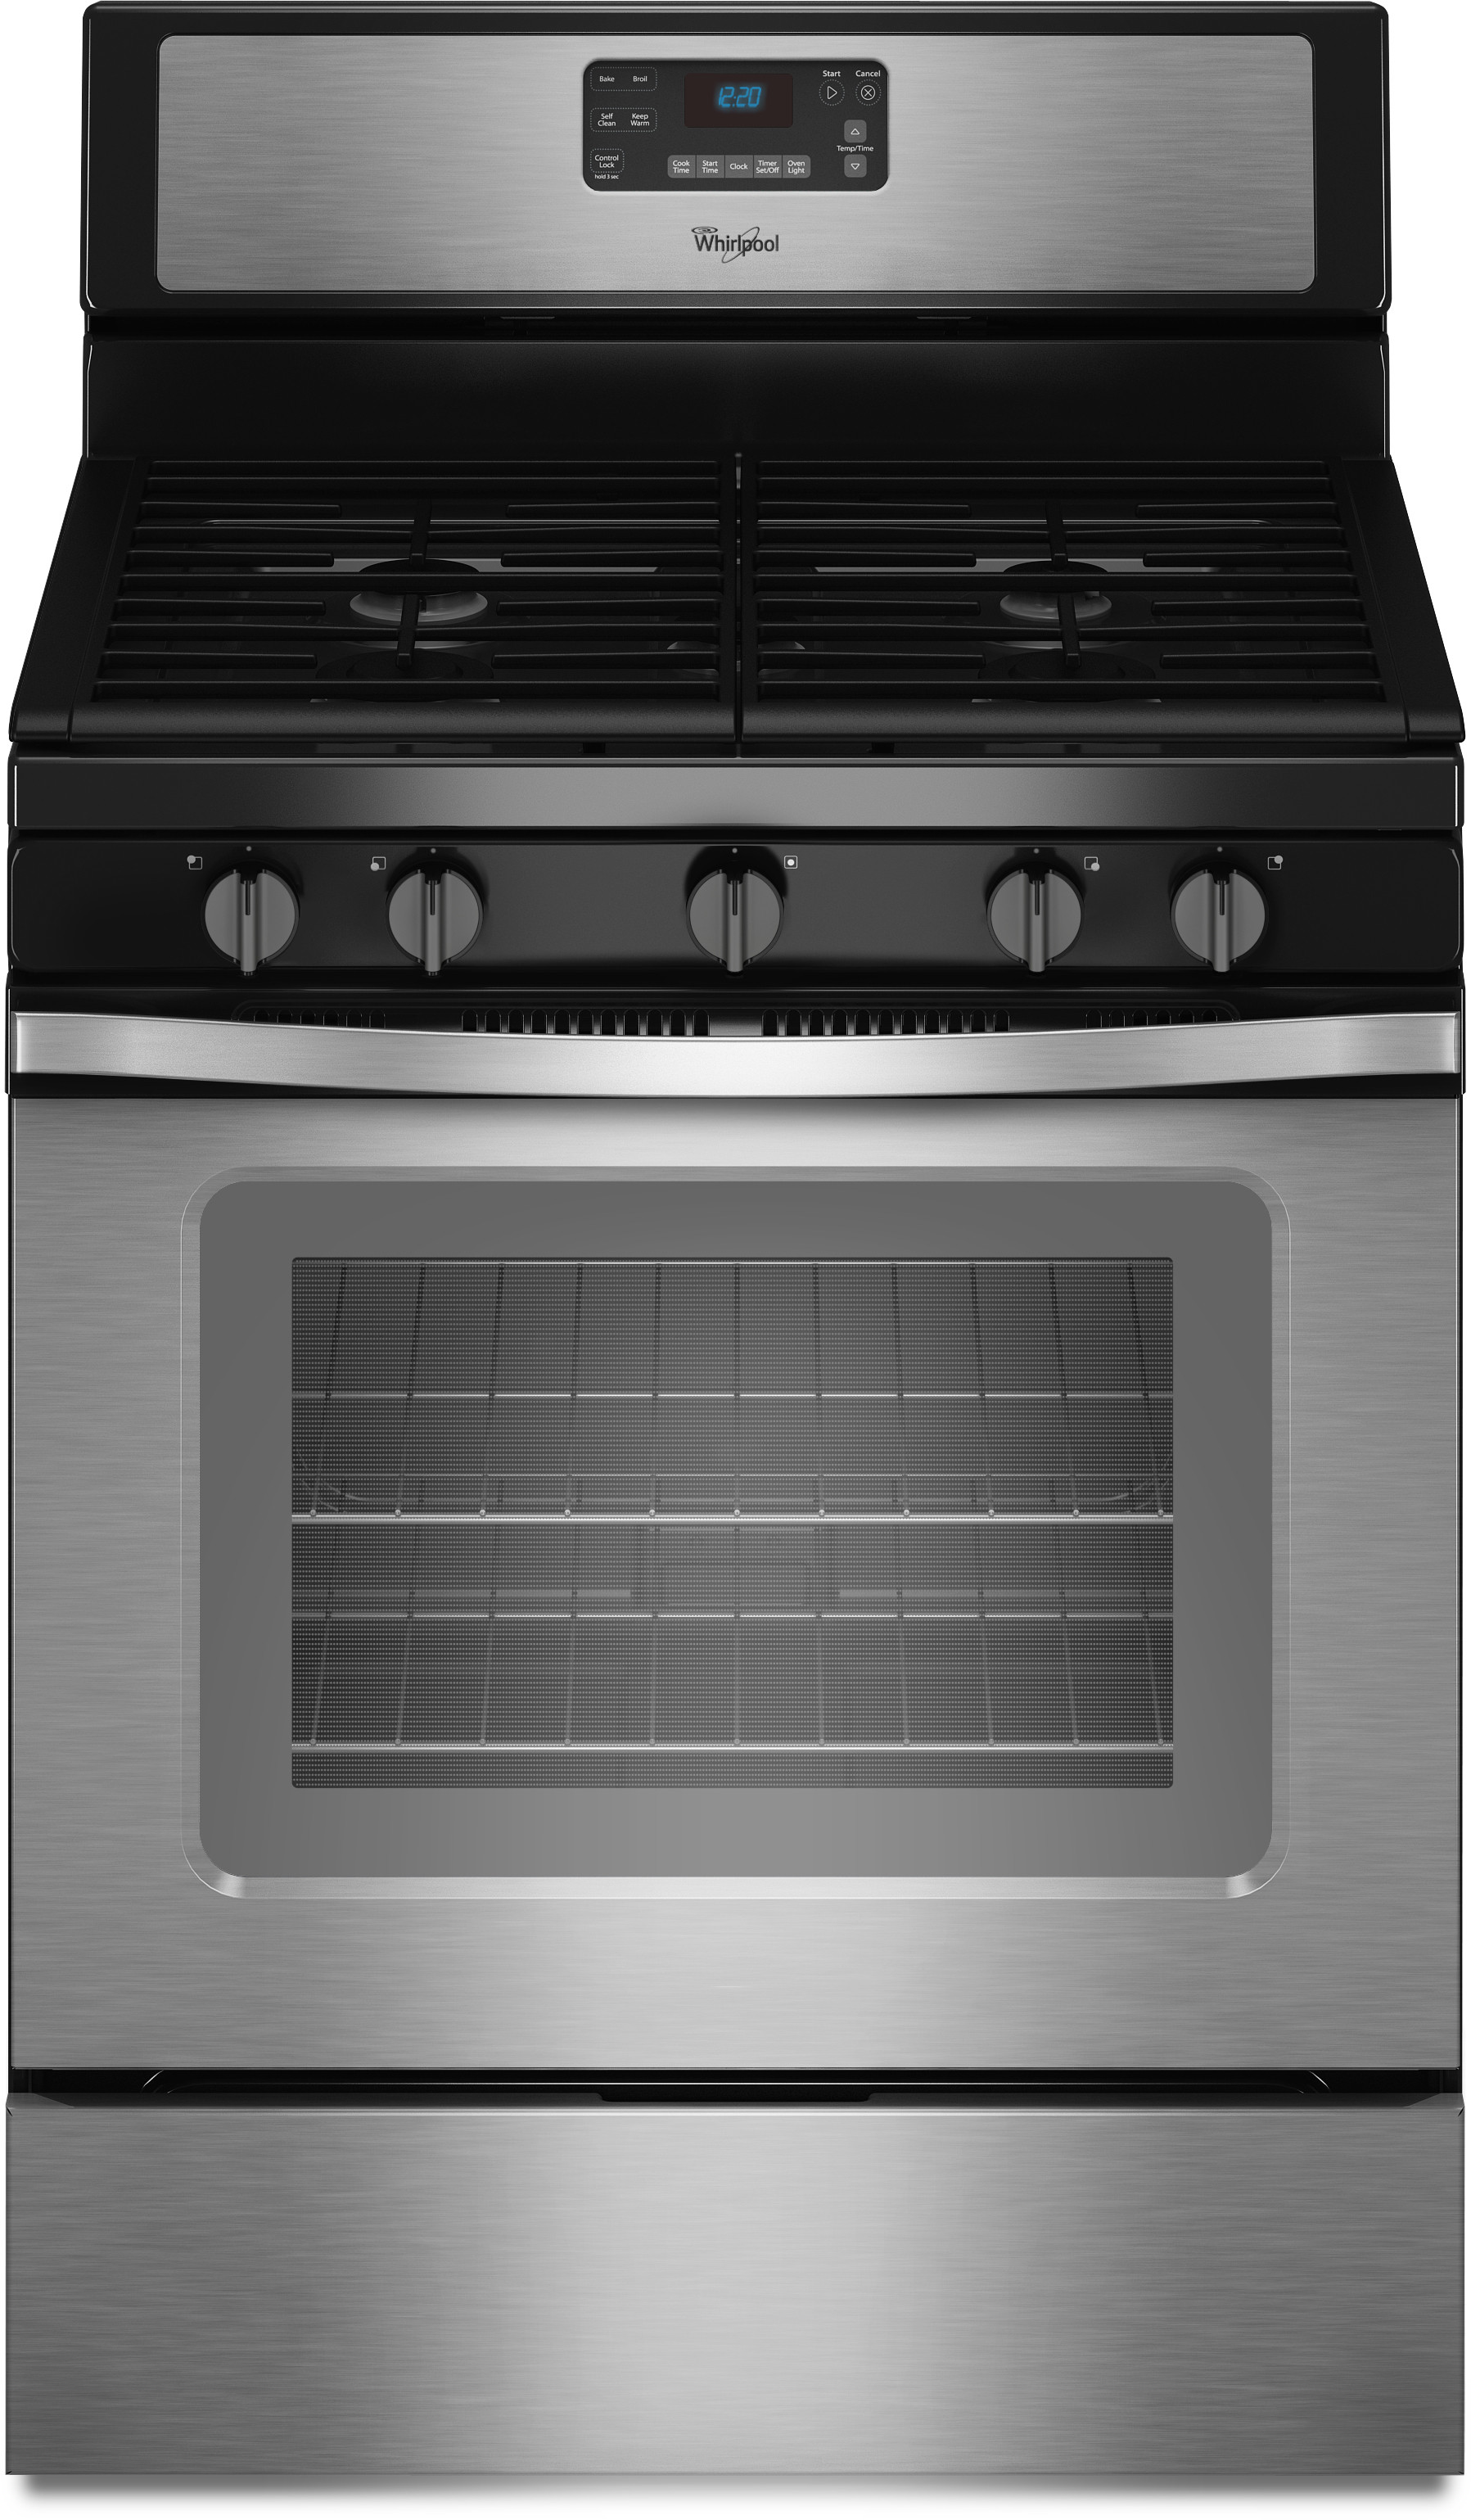 Whirlpool Wfg530s0es 30 Inch Freestanding Gas Range With 5